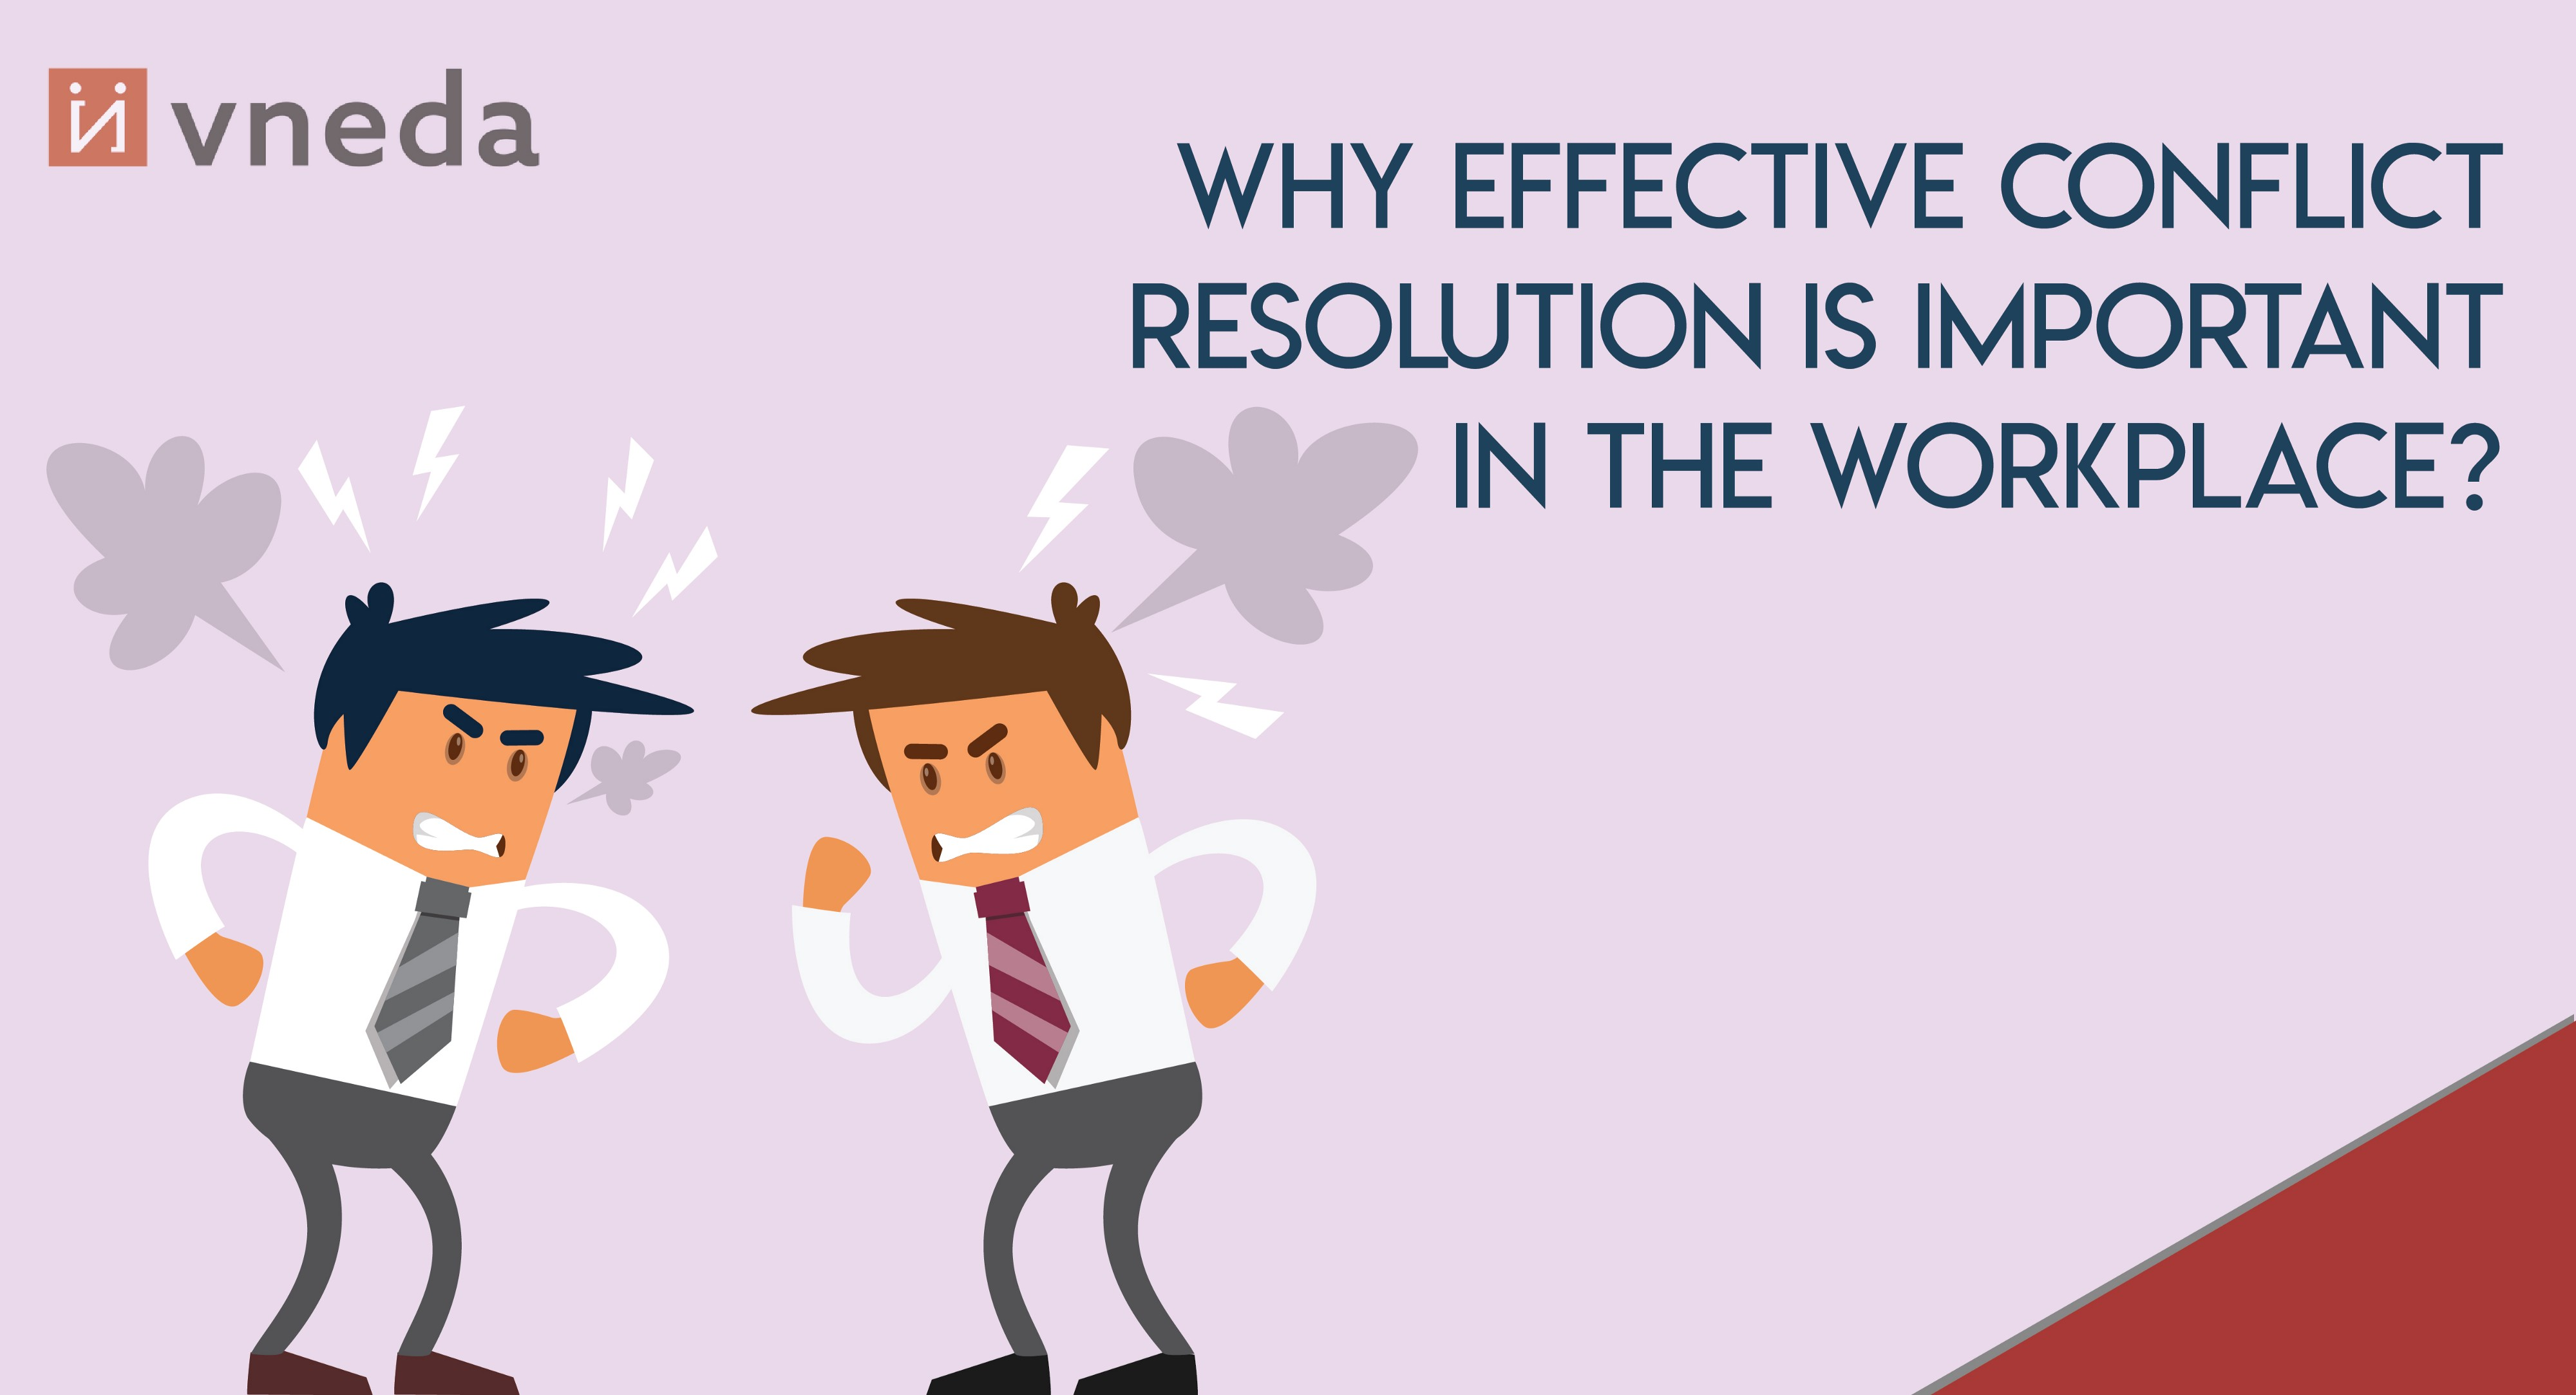 Why Effective Conflict Resolution Is Important In The